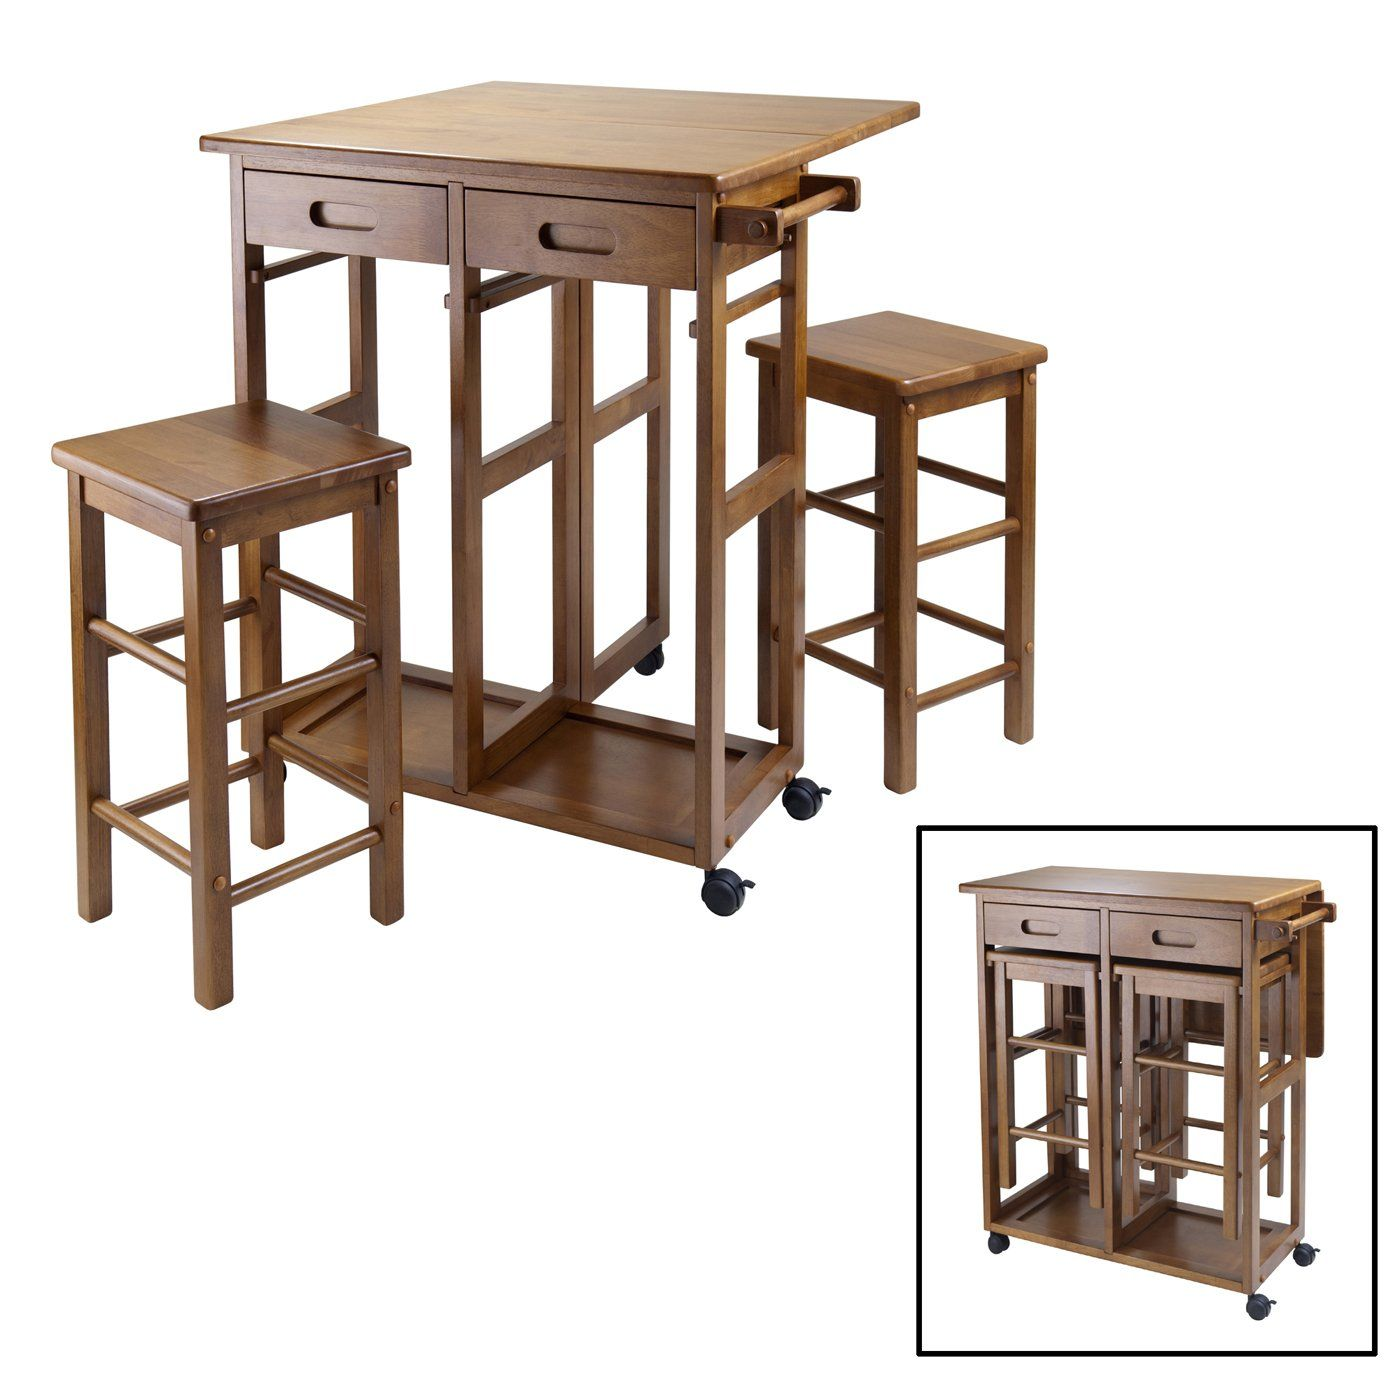 Winsome Wood 39330 Space Saver Kitchen Cart, Teak, love the hidden stools for a small kitchen